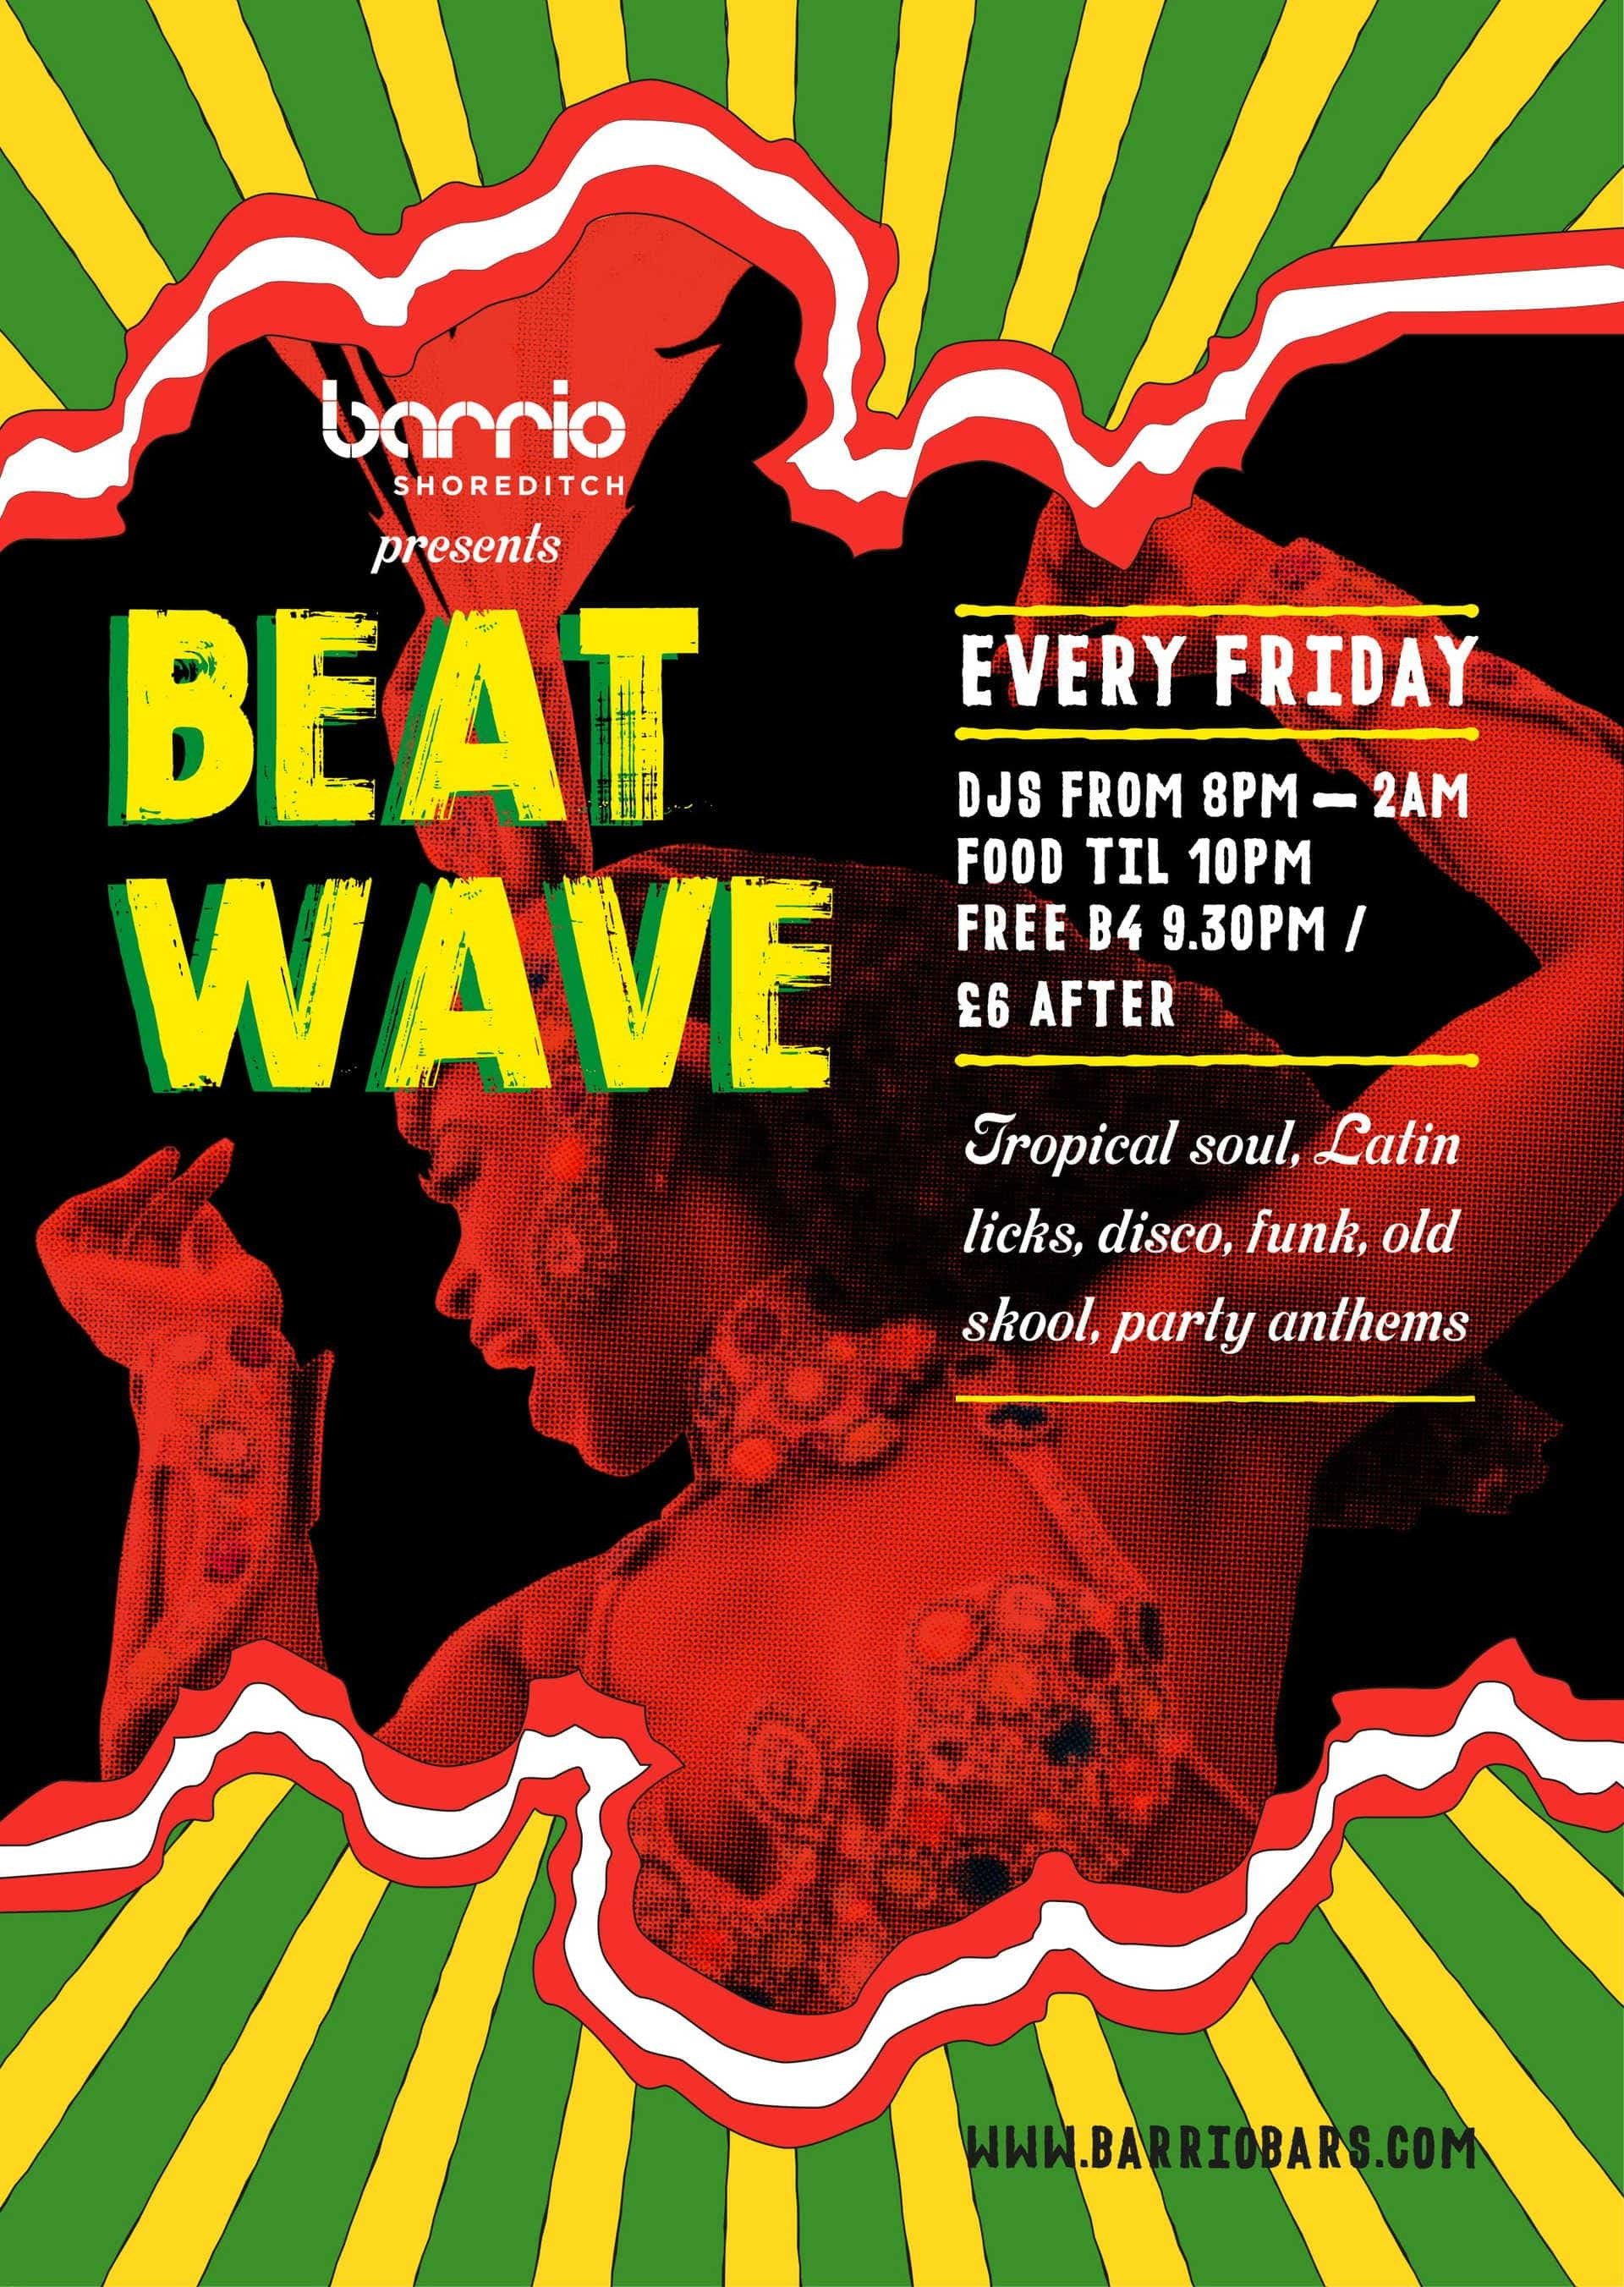 Shoreditch BeatWave Friday night Beat wave